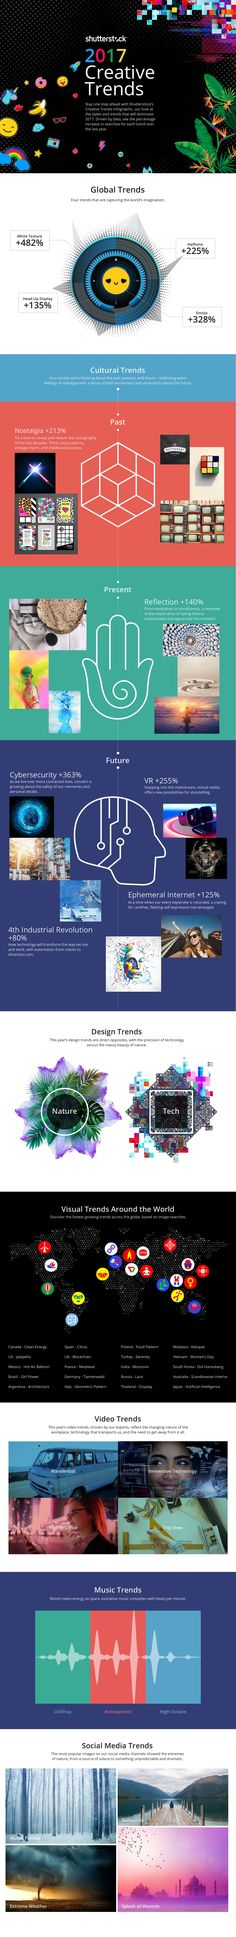 Shutterstock has released it's annual Creative Trends Report, highlighting the latest visual content trends to be aware of.